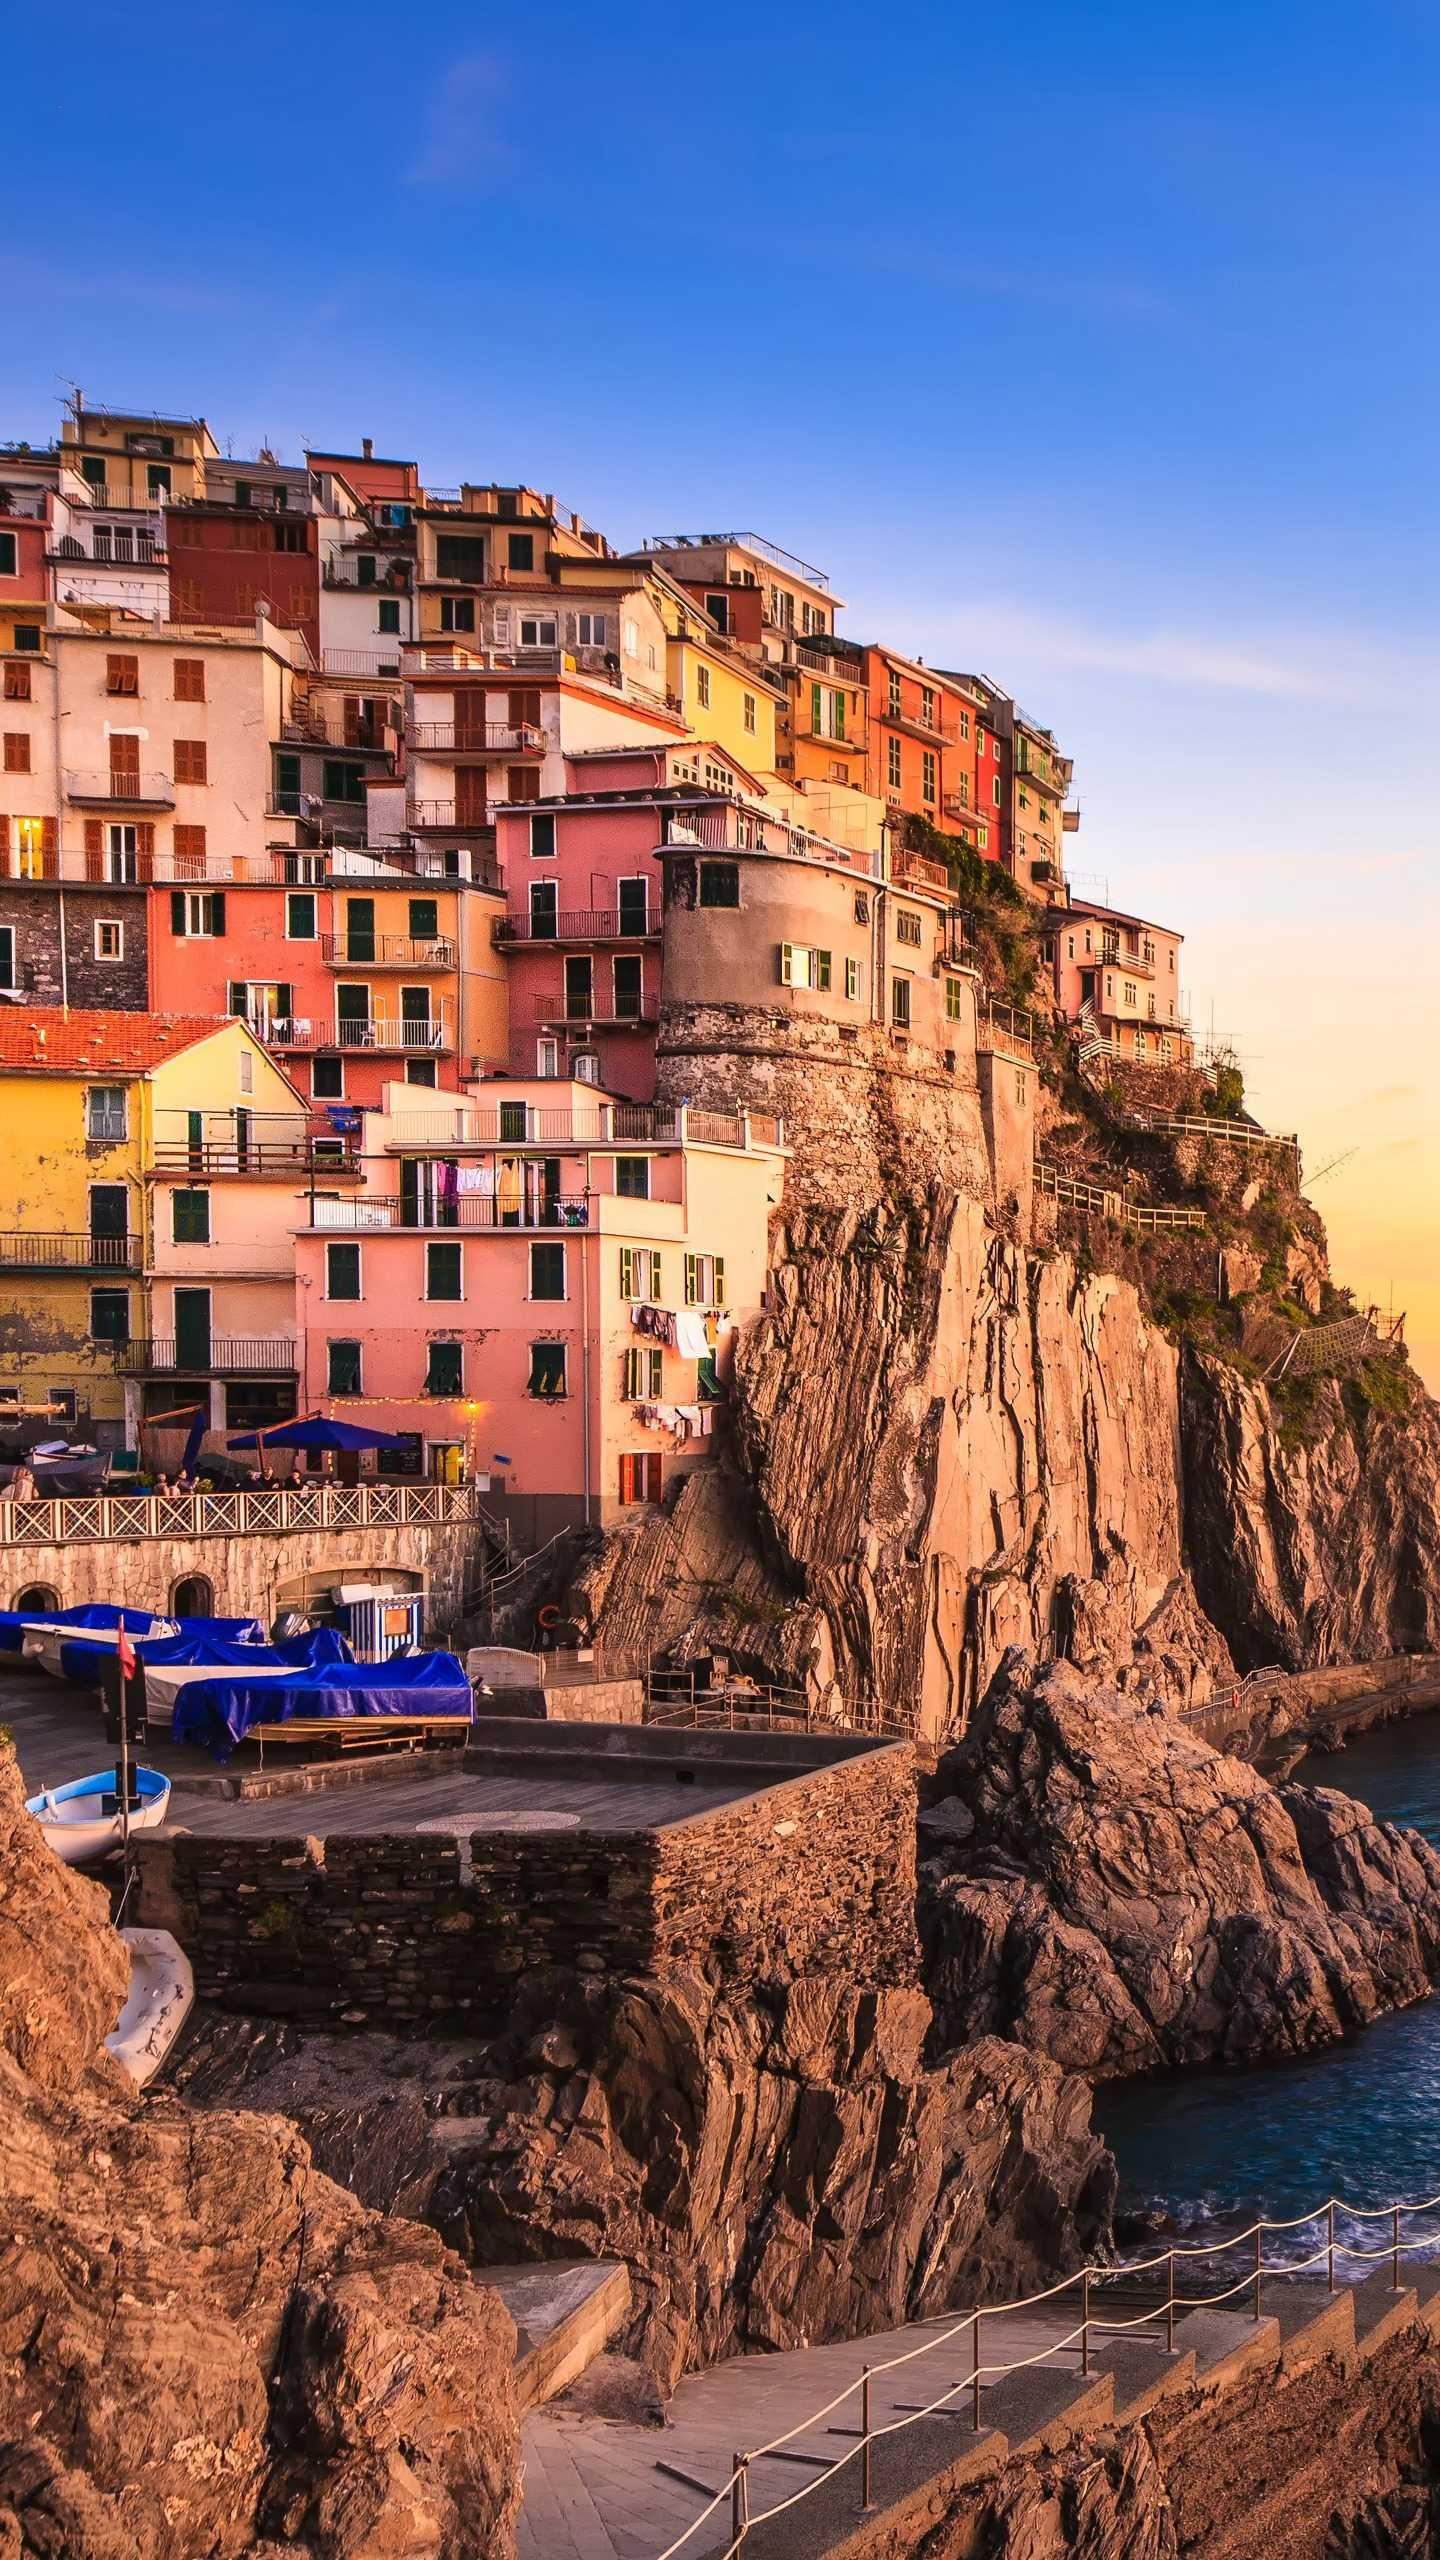 Manarola Village. Manarola is the smallest of the five largest fishing villages in the northern Italian seaside town and is known for its colourful architecture.